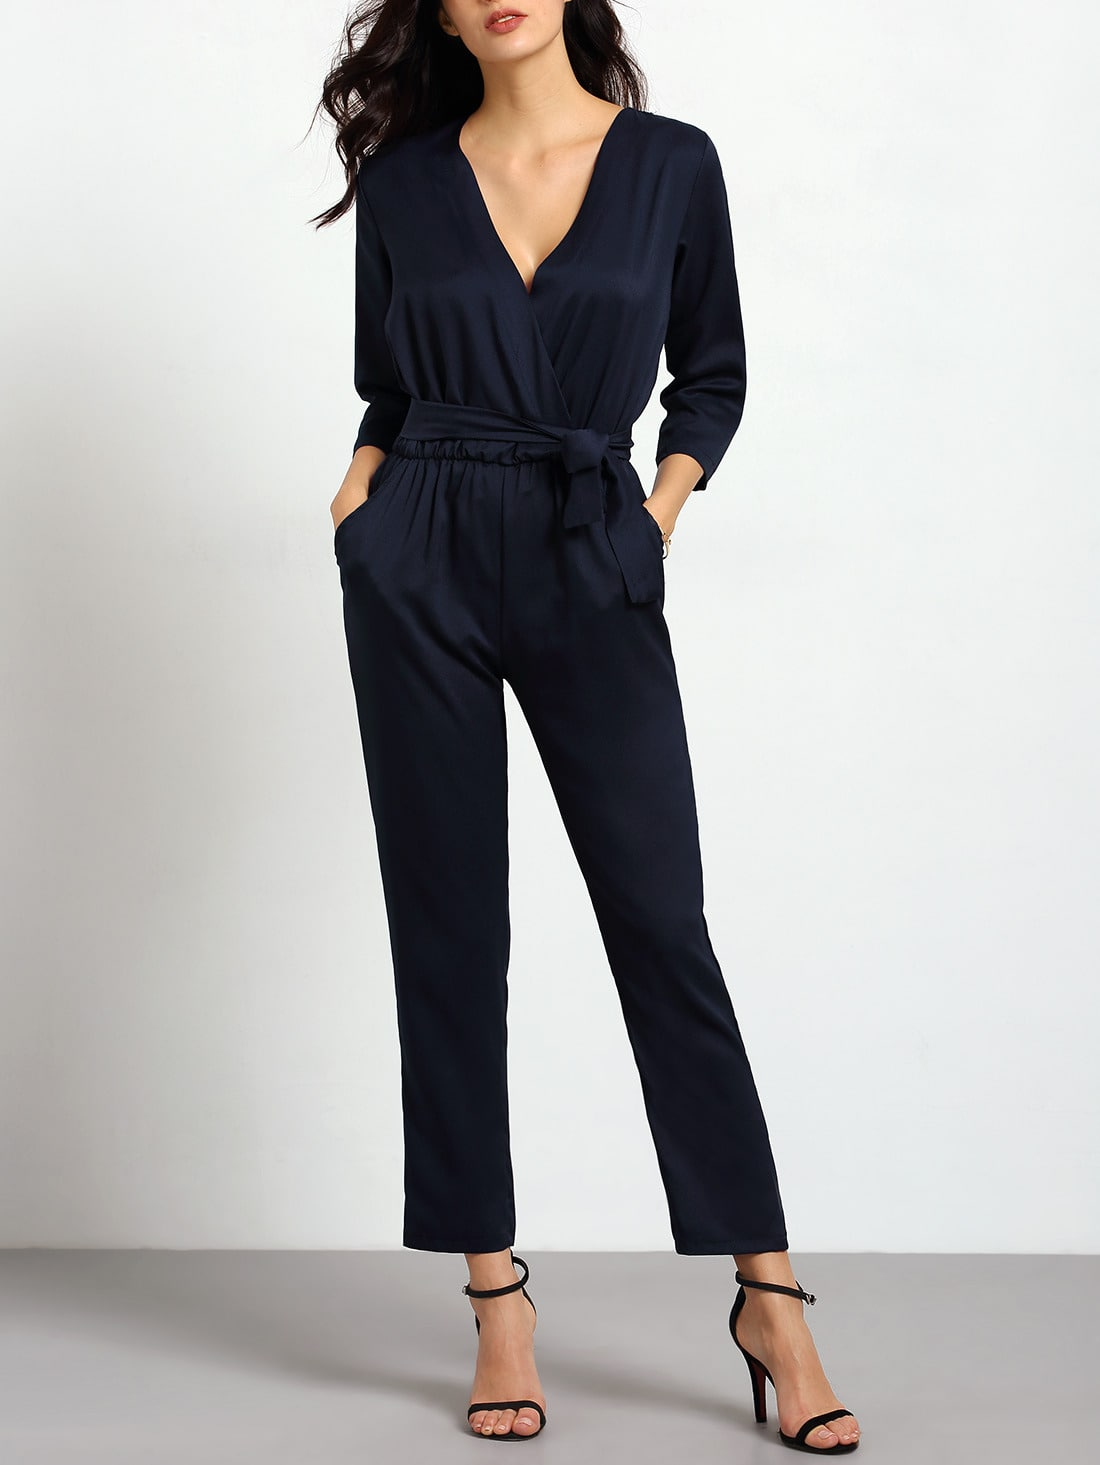 Royal Blue V Neck Pockets Jumpsuit